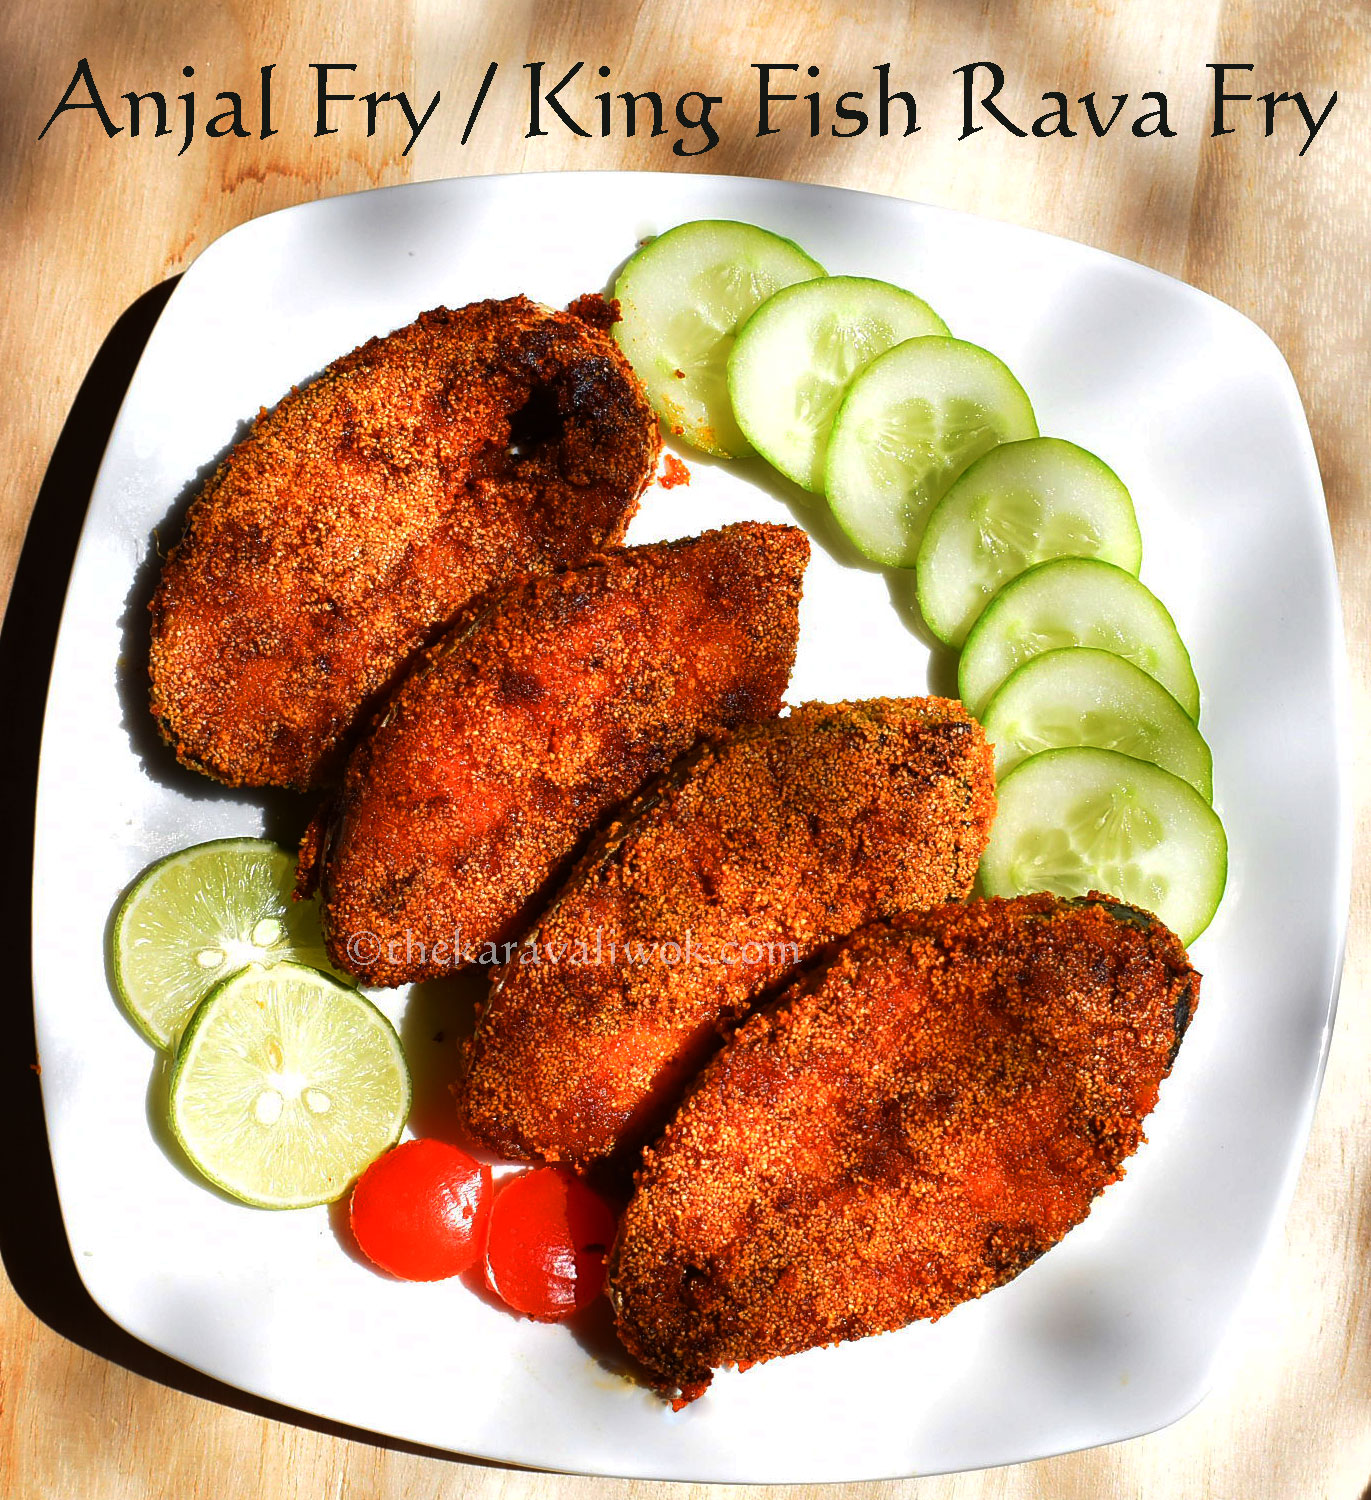 Anjal Fry | King Fish Rava Fry – Mangalorean Style